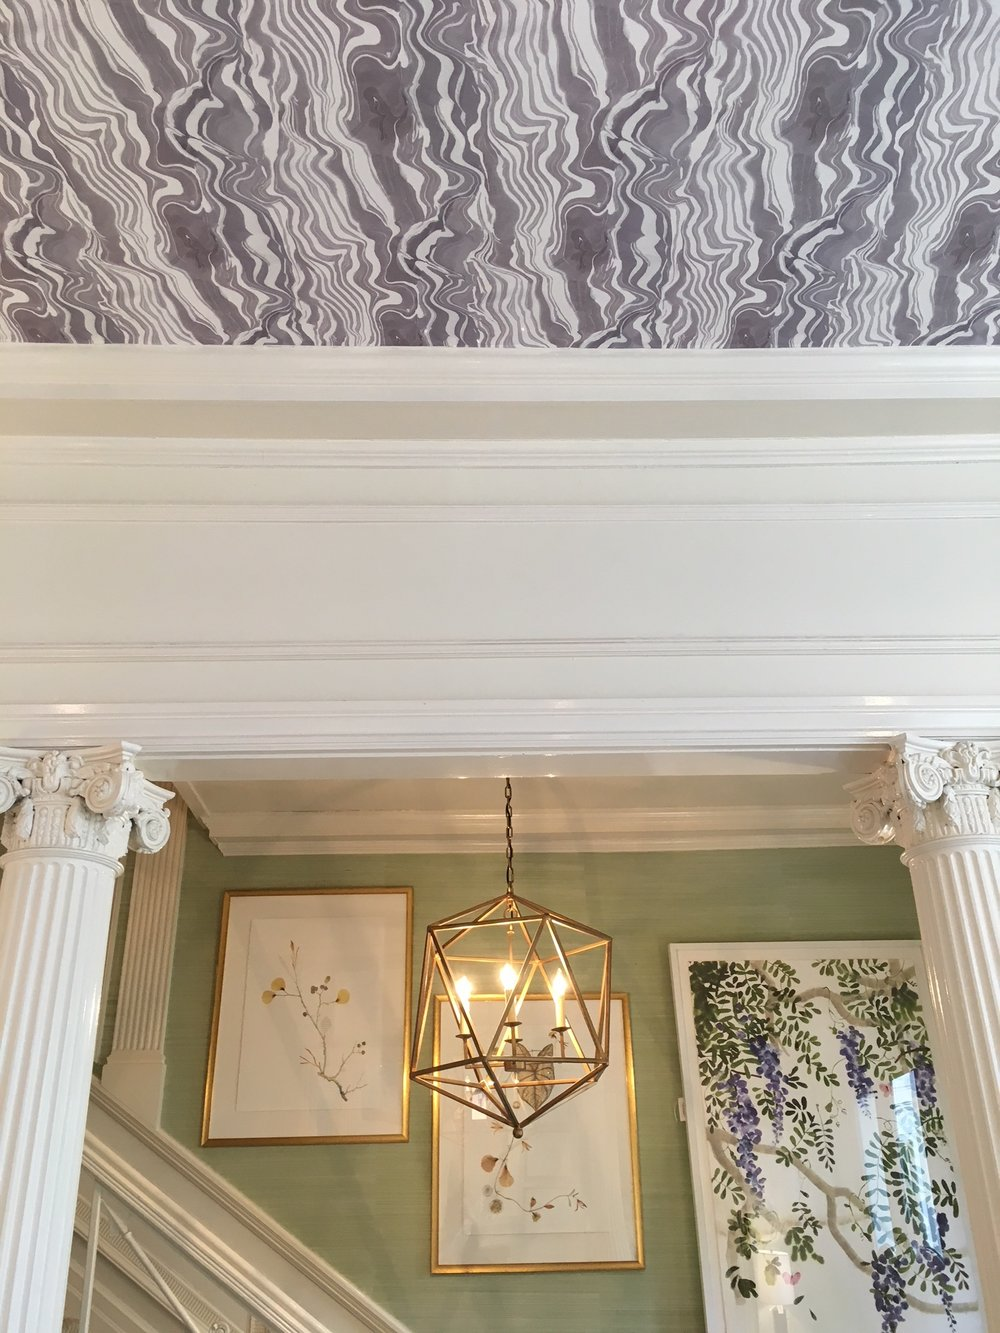 One of the Rebecca Atwood wallpapers we saw at James, shown here on the ceiling. So cool.